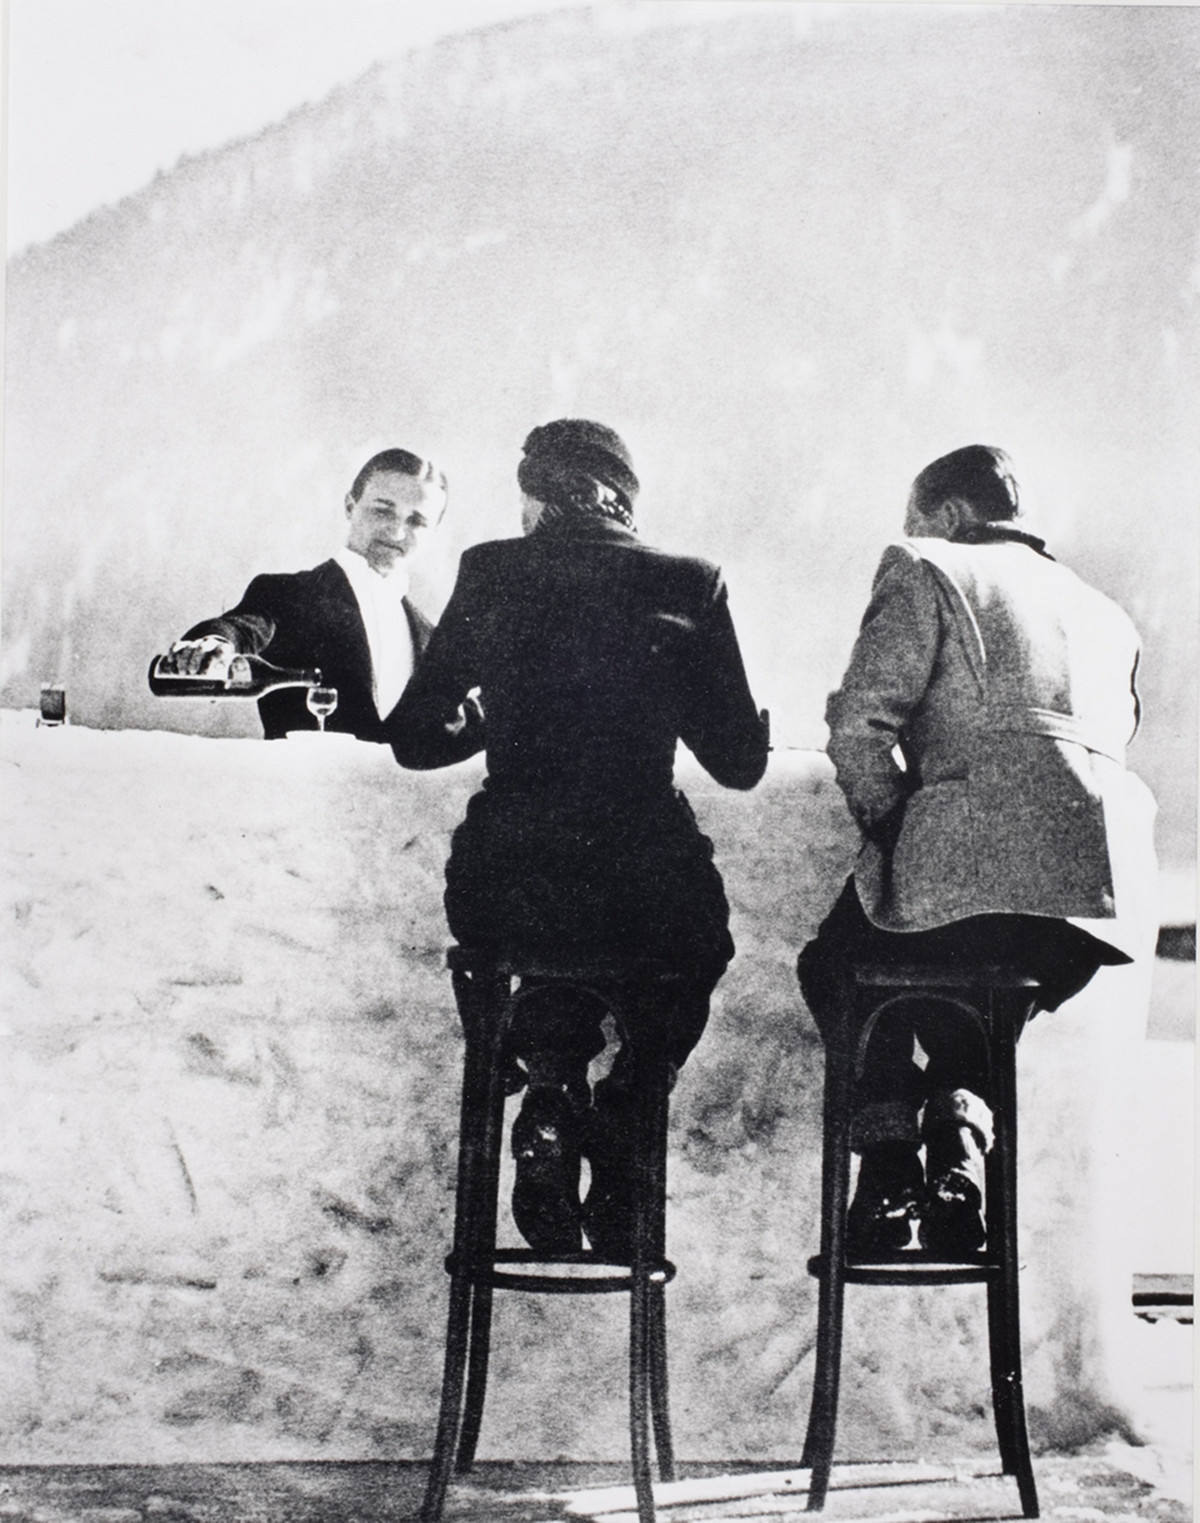 Alfred Eisenstaedt photos of  Ice bar at the Palace Hotel ice rink in St. Moritz, Switzerland, 1947.